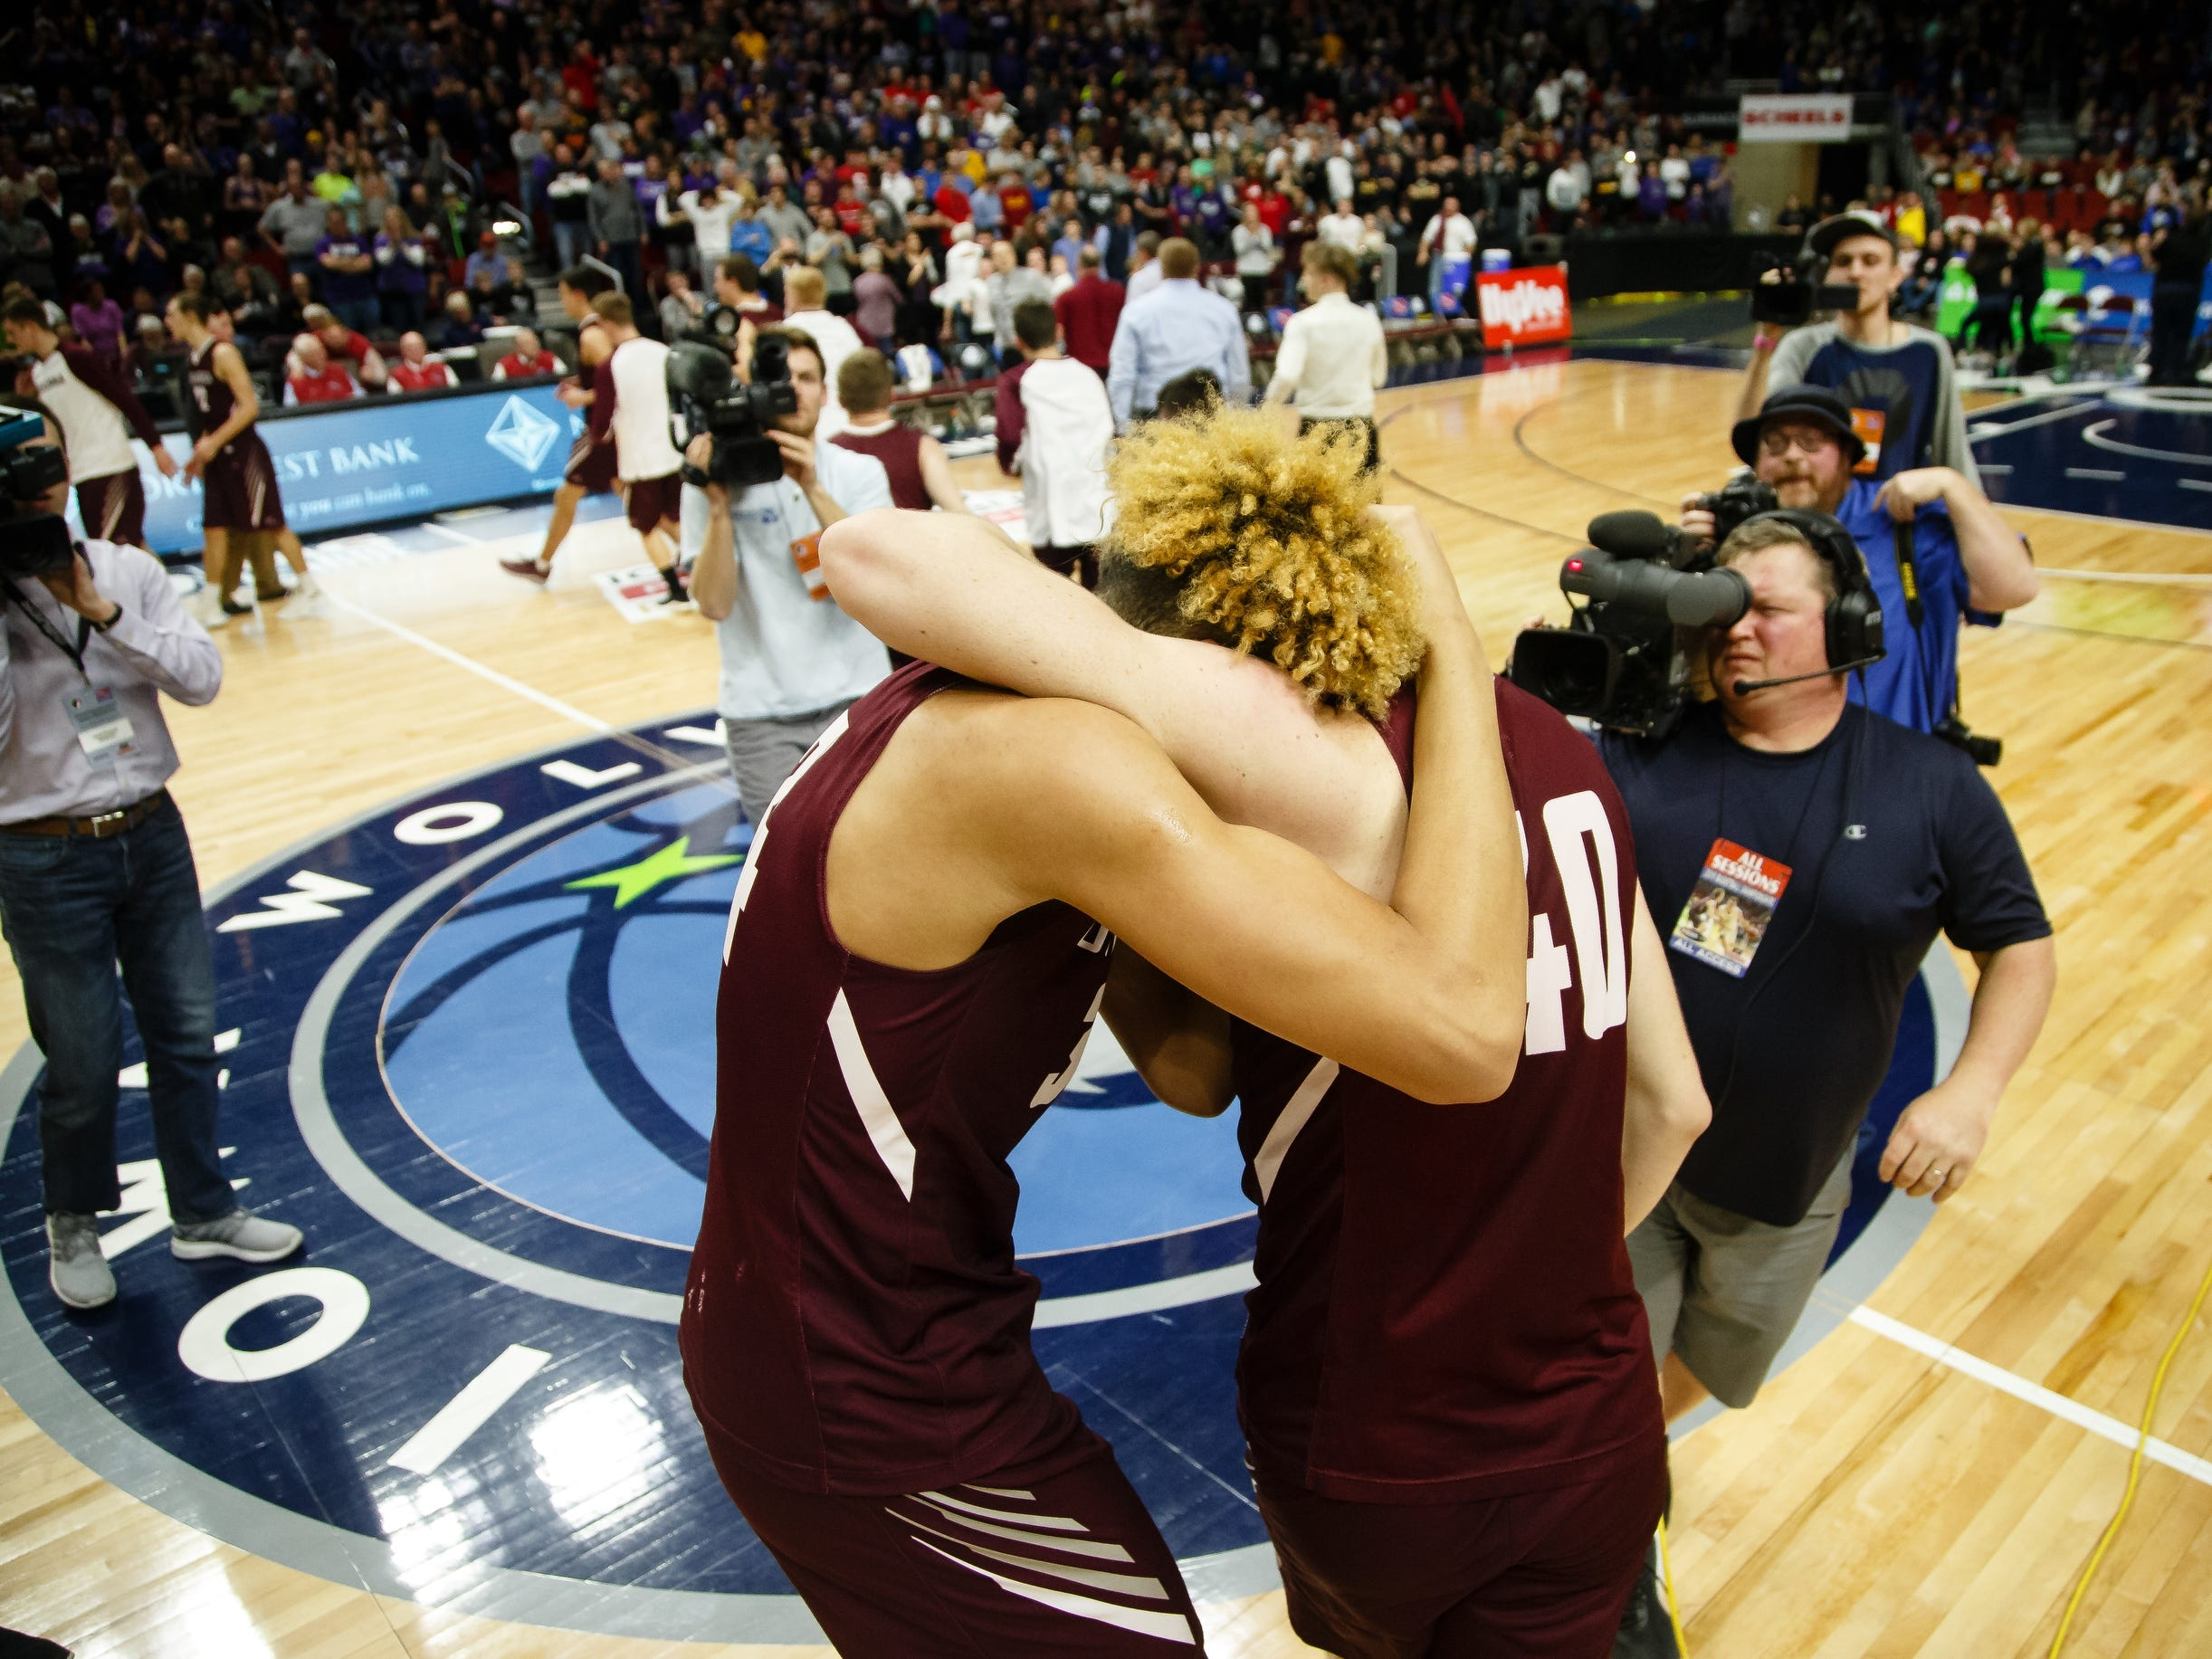 Oskaloosa's Xavier Foster (34) and Oskaloosa's Cole Henry (40) hug after Oskaloosa defeated Norwalk 48-44 to win the boys 3A state basketball championship game on Friday, March 8, 2019 in Des Moines.